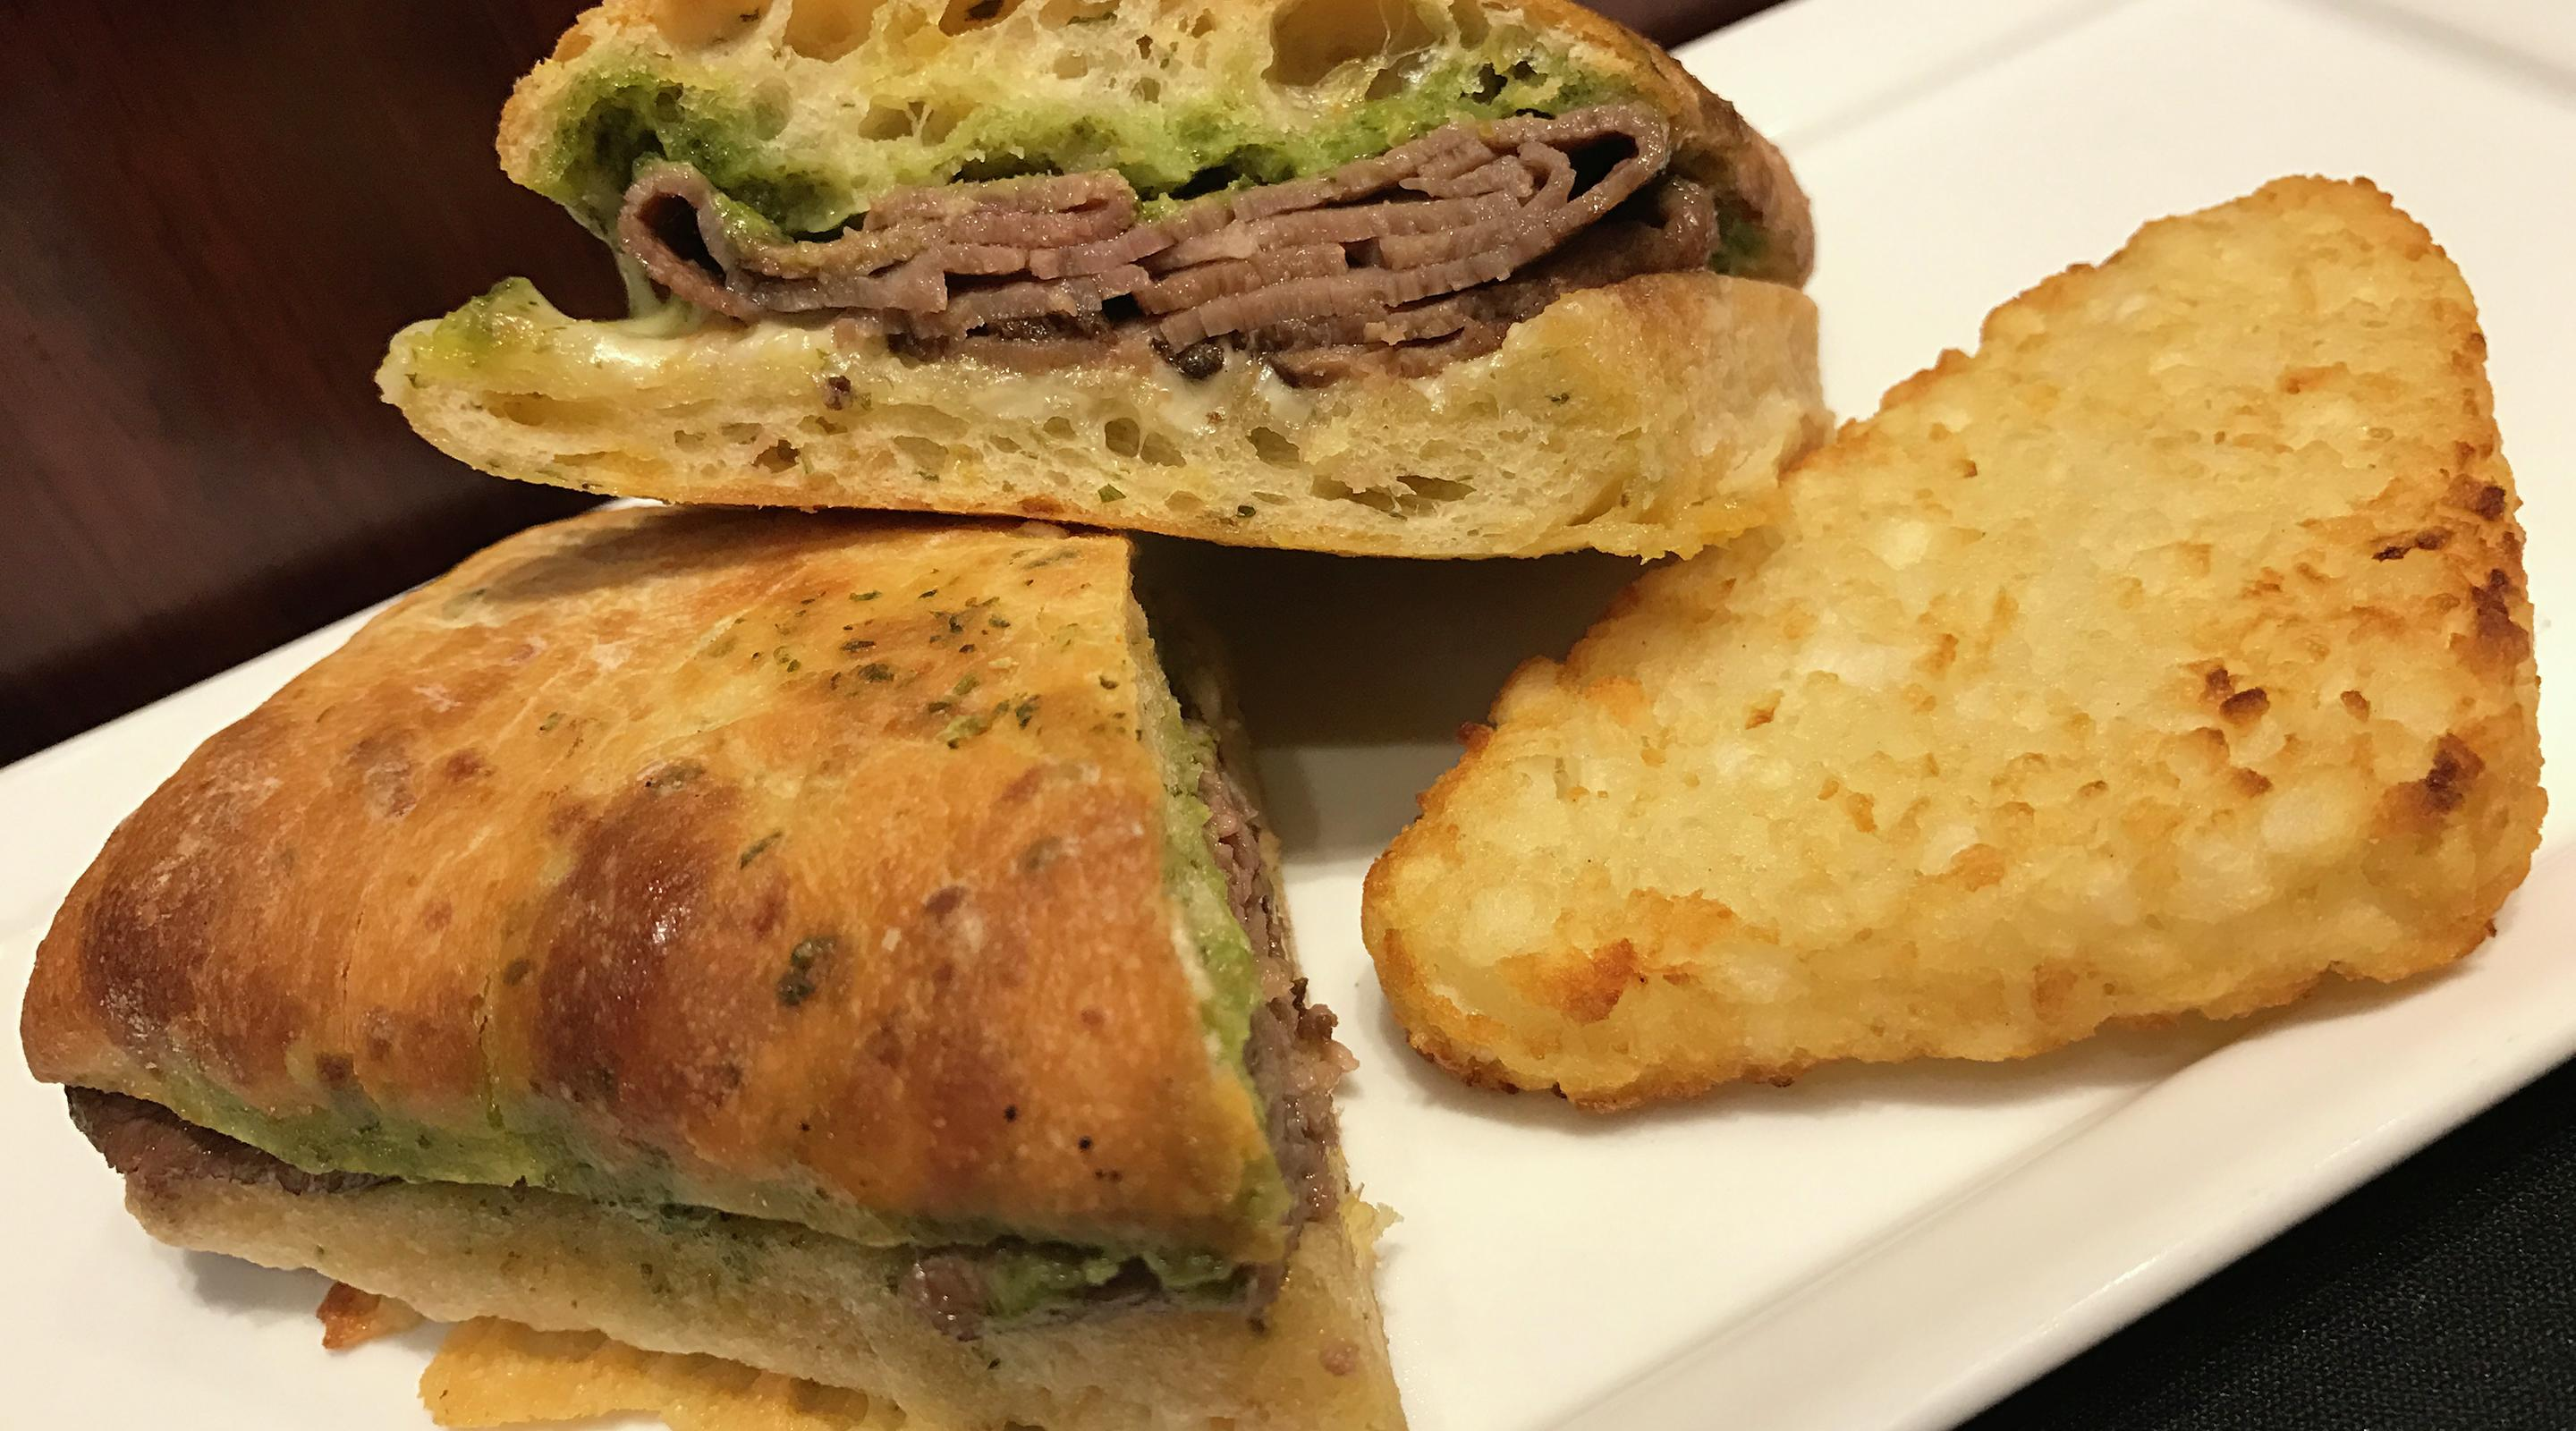 Savory sandwiches from Castle Coffee, the best way to jump start your adventure.